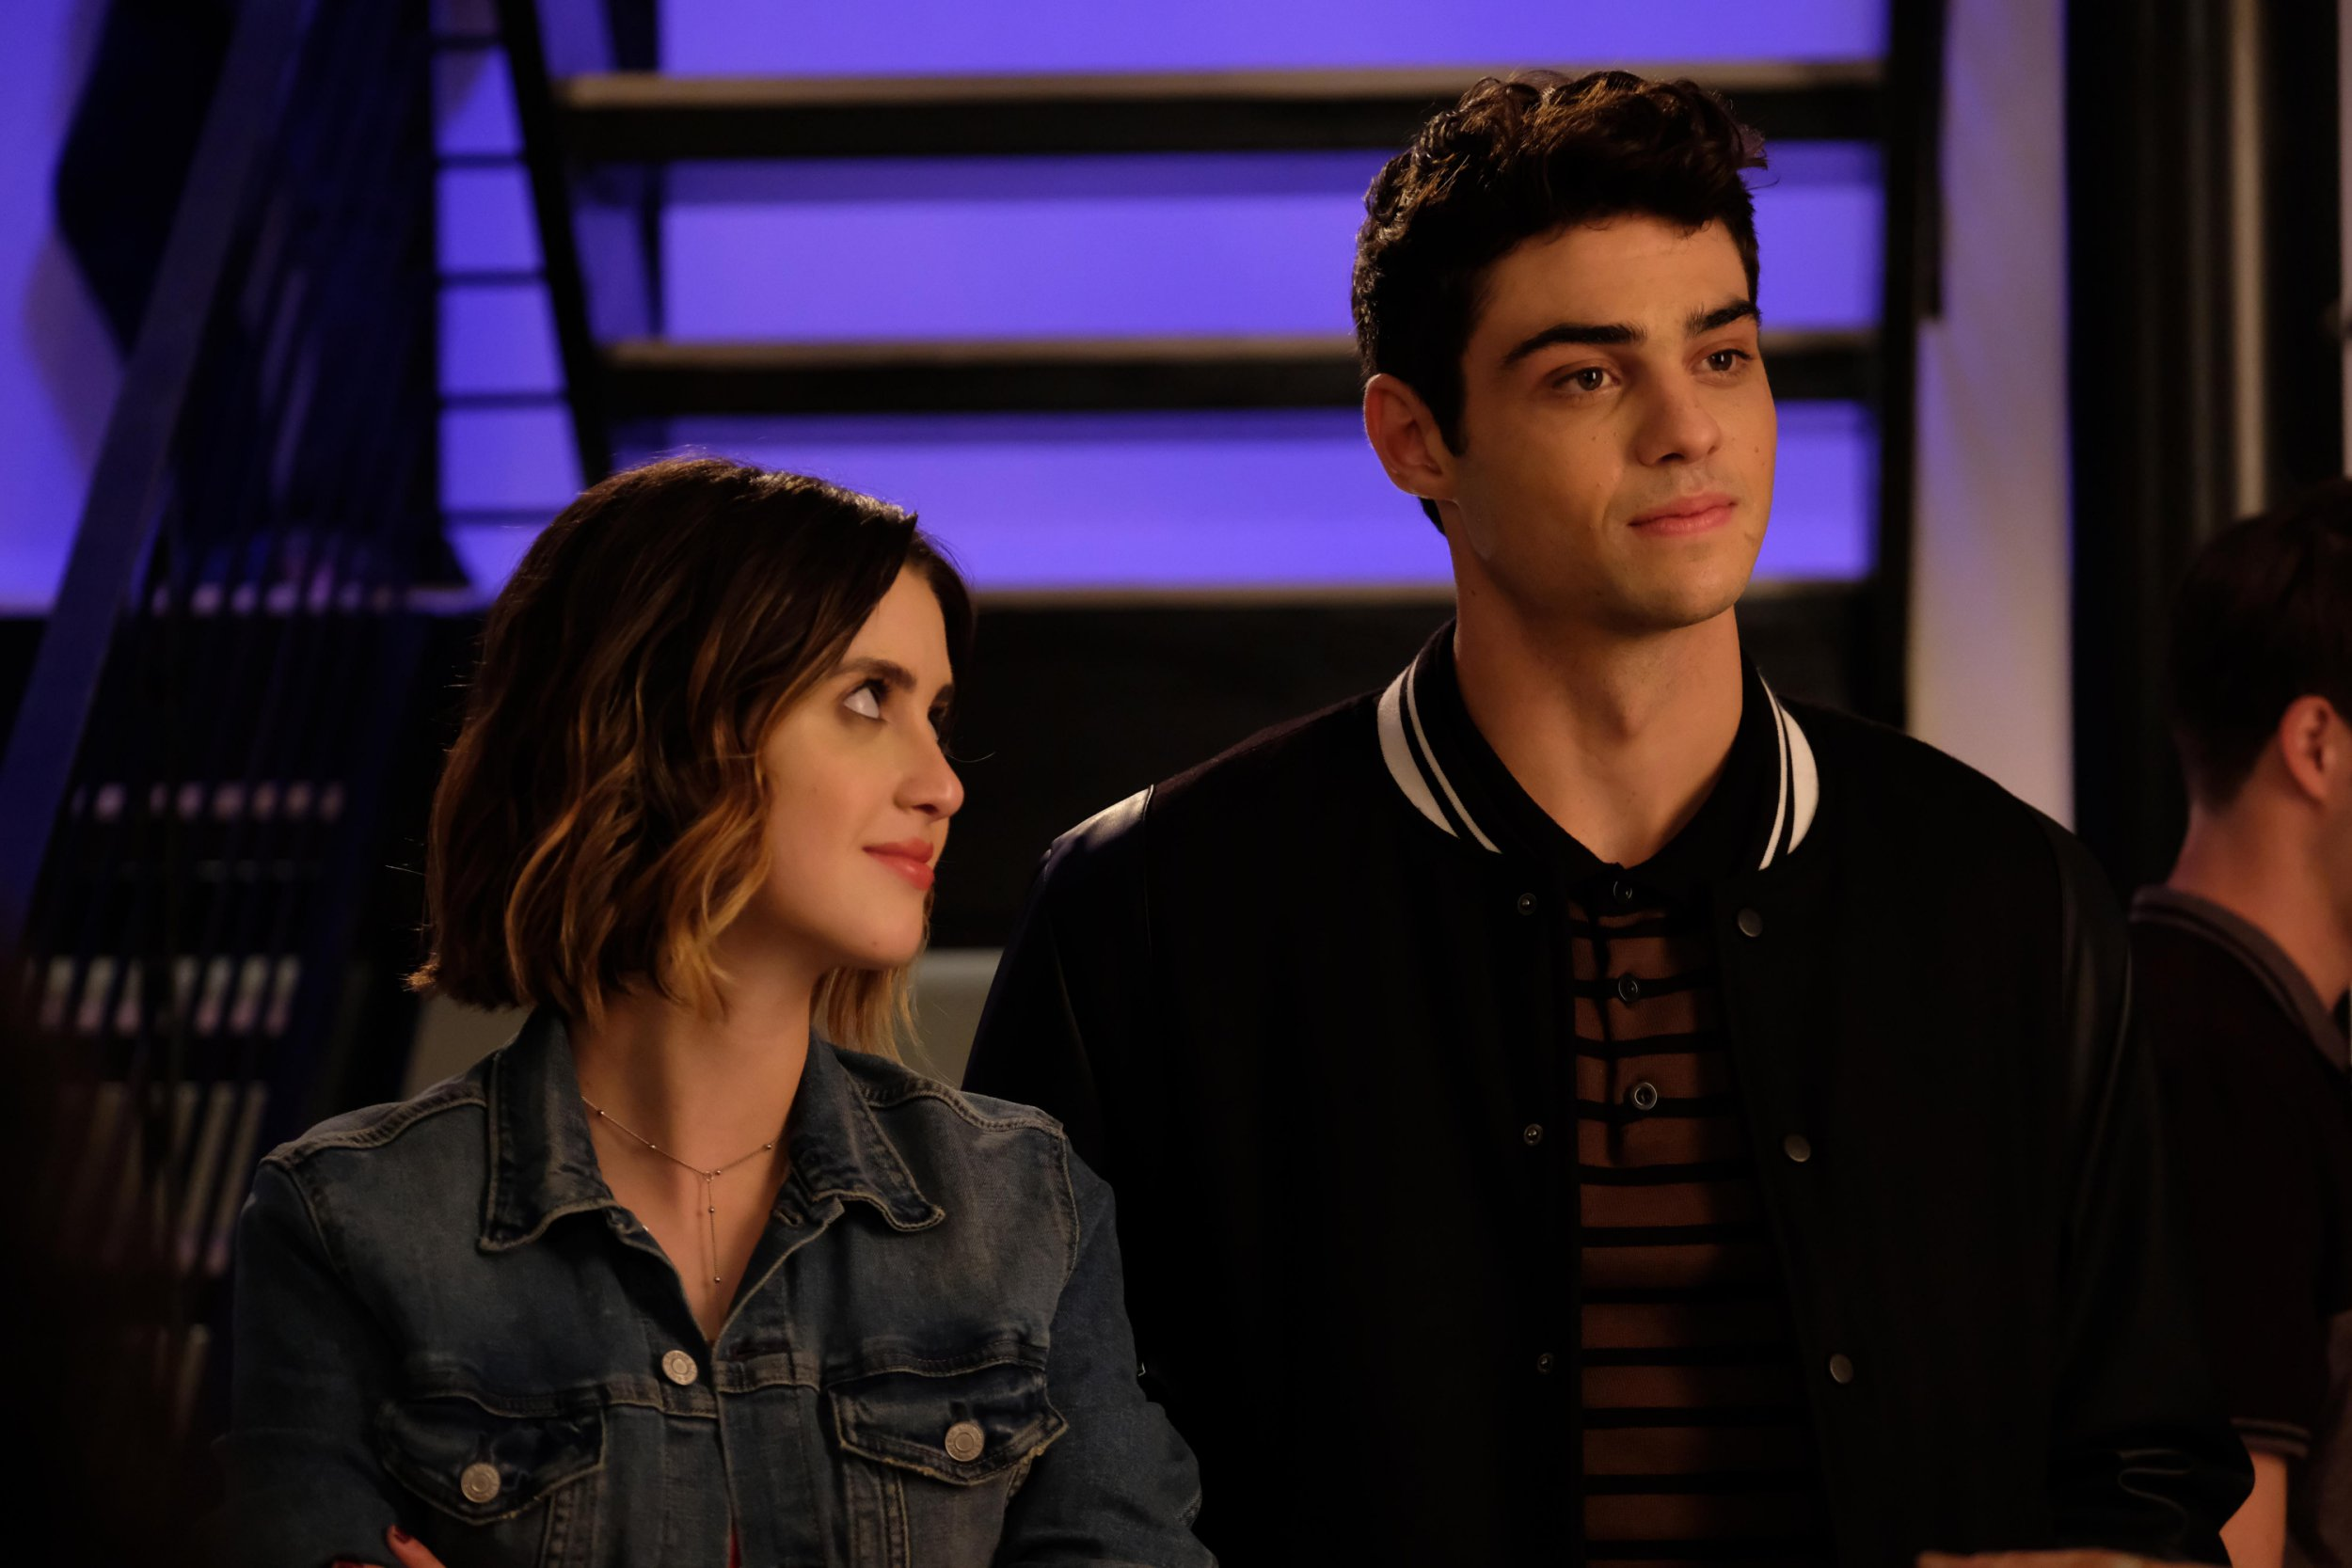 The Perfect Date's Laura Marano says Noah Centineo 'hasn't changed' as she talks Austin and Ally reunion picture NETFLIX